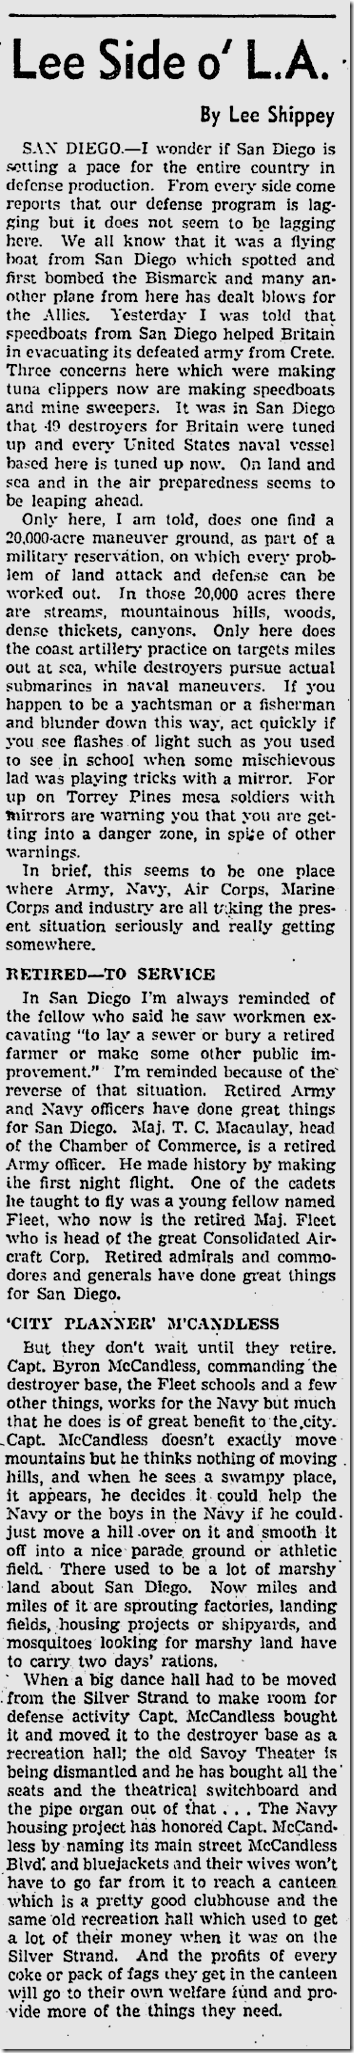 Sept. 4, 1941, Lee Shippey